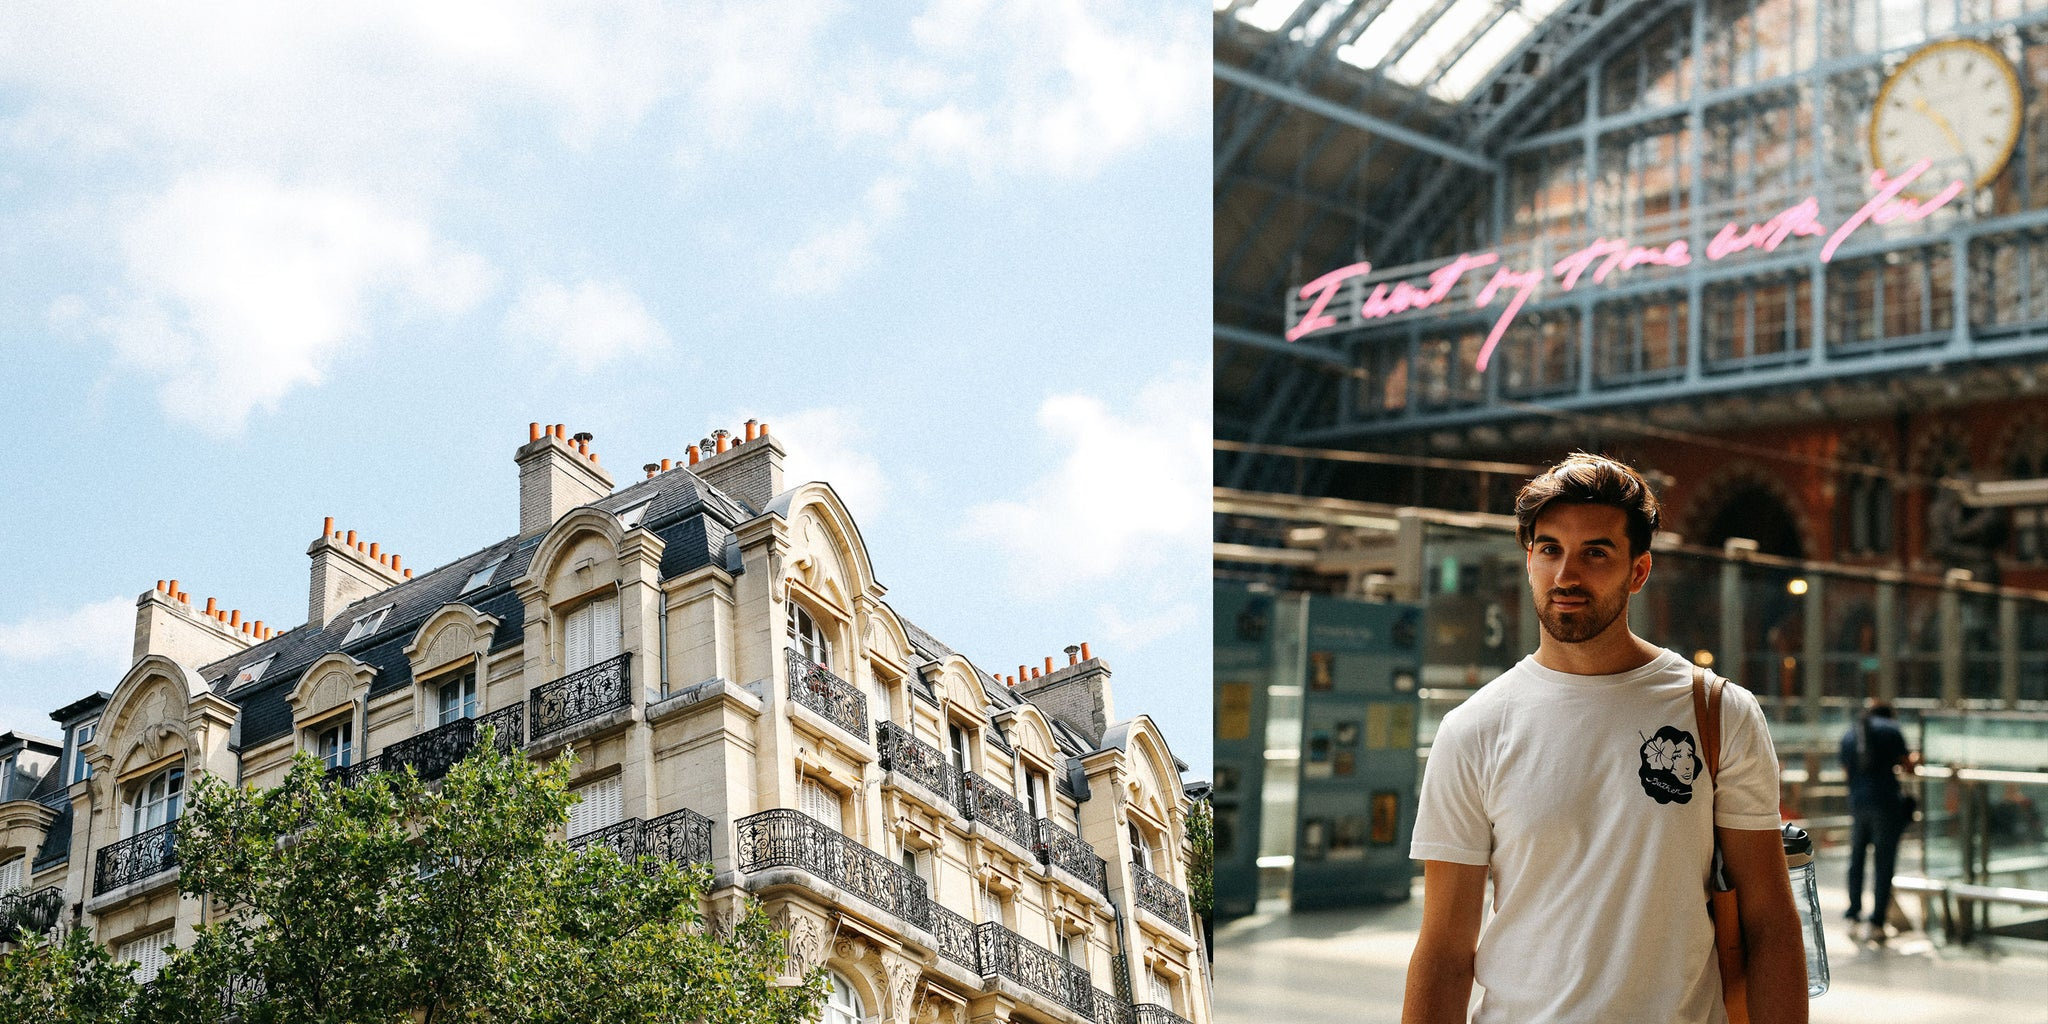 Bather's Excellent Adventures: Paris with Nicole Breanne and Lucas Young wearing Bather's White Hula Girl Shirt